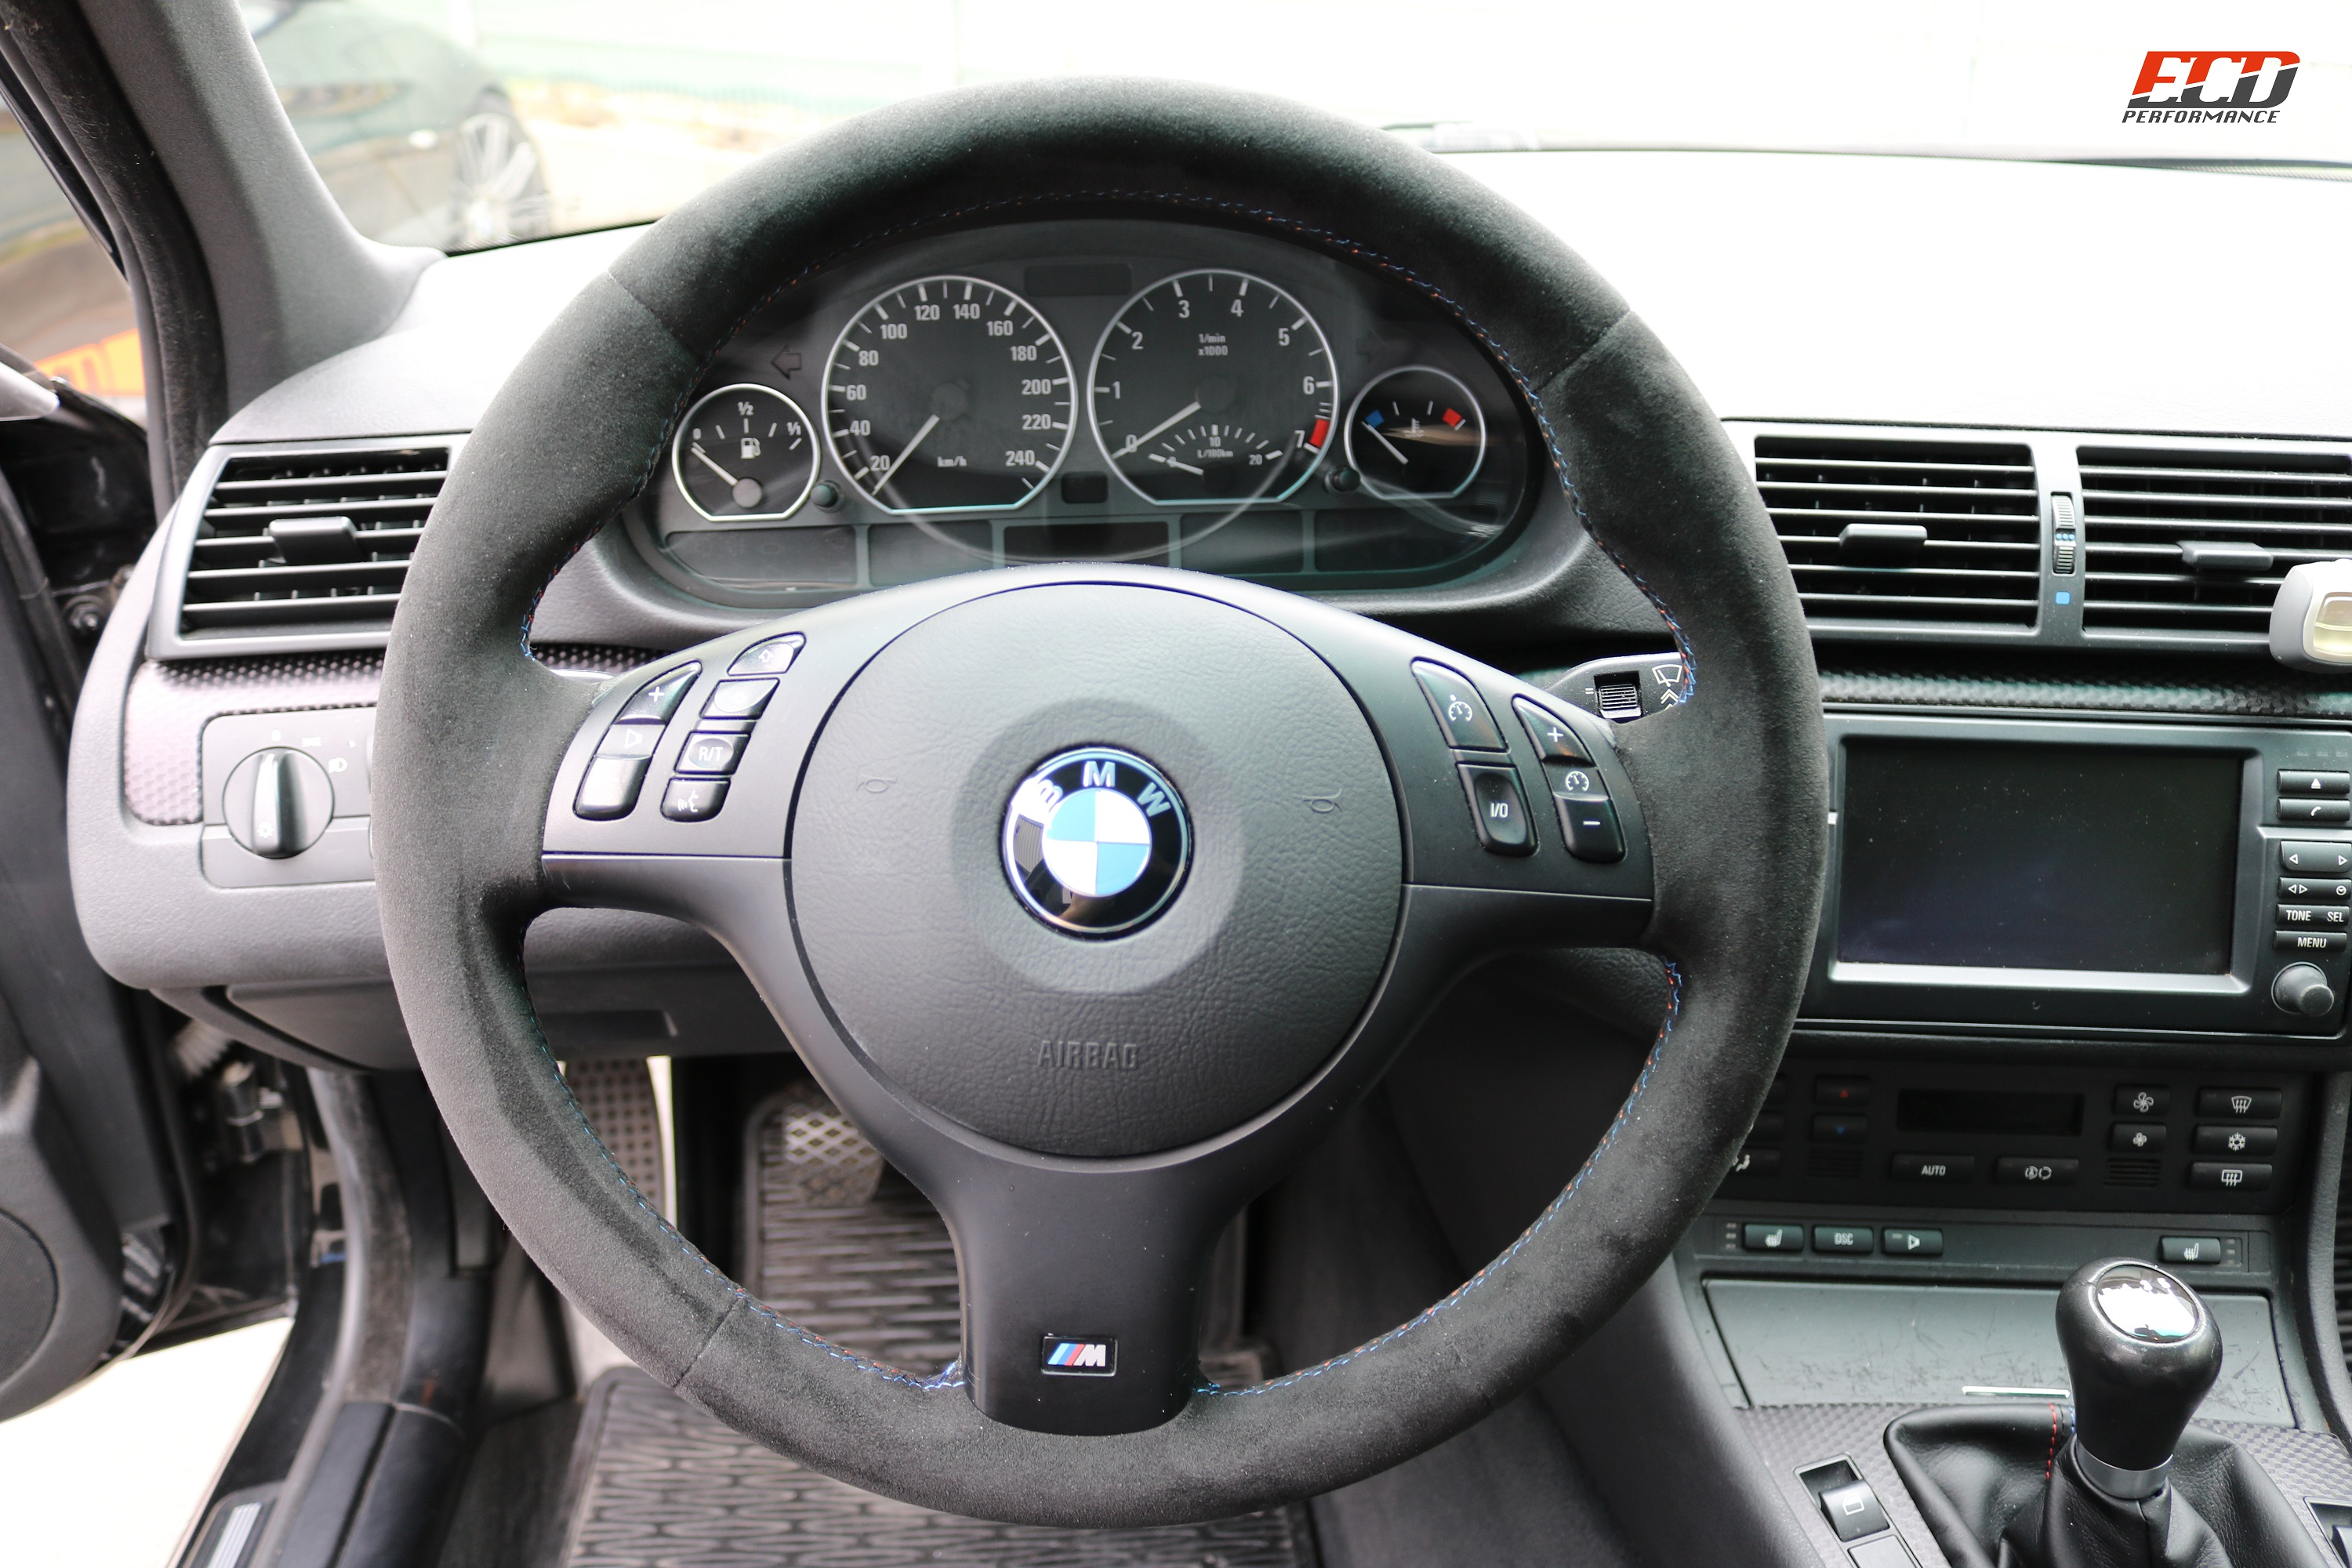 Steering Wheel New Bmw E46 Alcantara Desired Color Without 12 O Clock Position Without Upholstery My Parts For Finishing